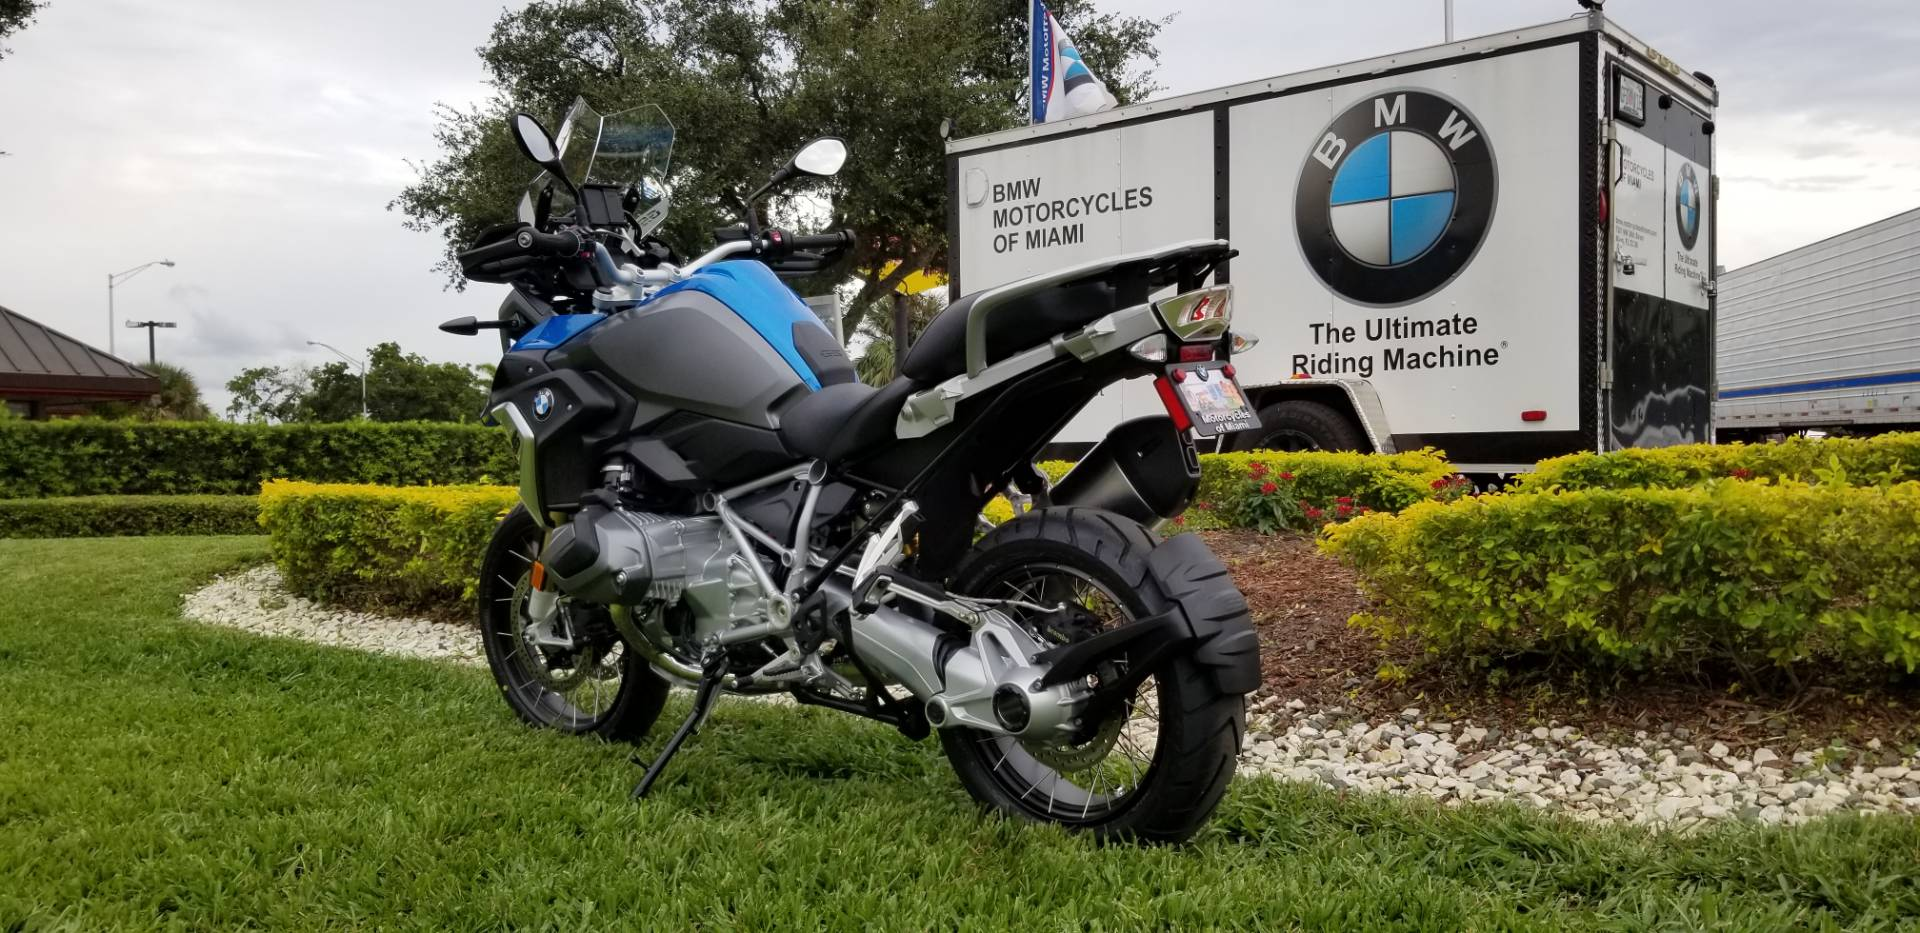 New 2019 BMW R 1250 GS for sale, BMW for sale R 1250GS, BMW Motorcycle R1250GS, new BMW 1250GS, R1250GS, BMW. BMW Motorcycles of Miami, Motorcycles of Miami - Photo 20